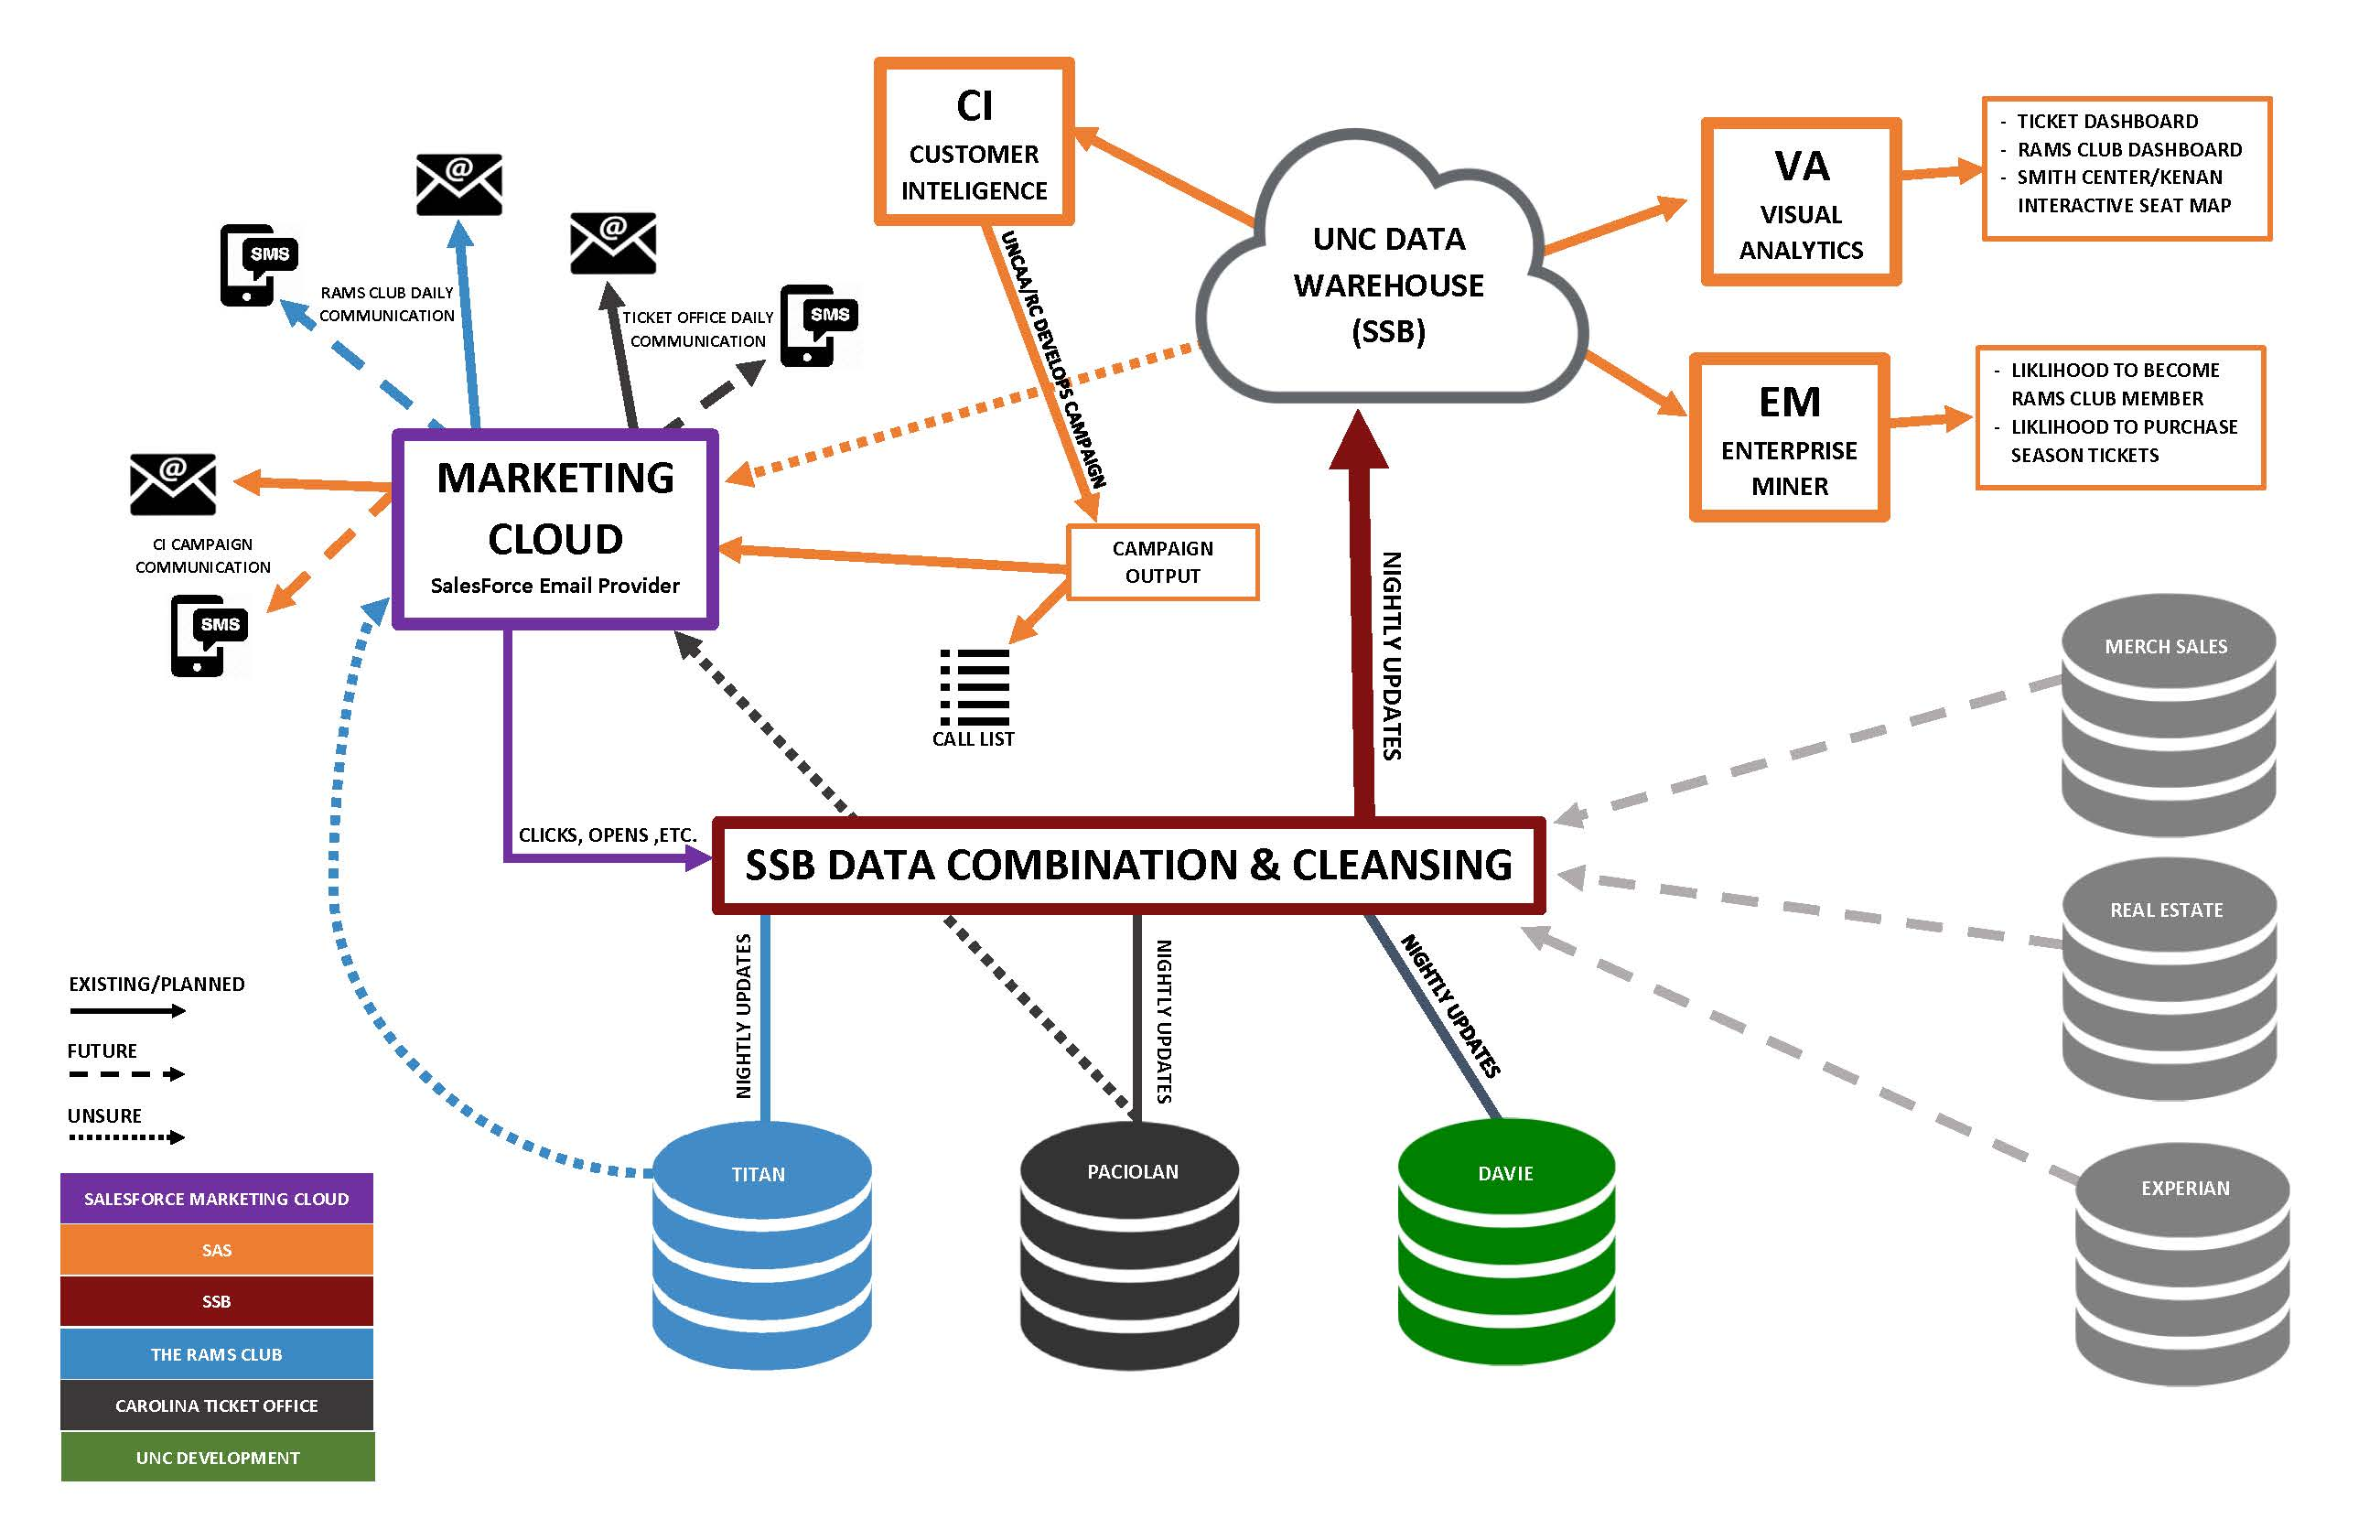 athletics big data diagram information technology services rh its unc edu big data architecture diagram big data architecture diagram